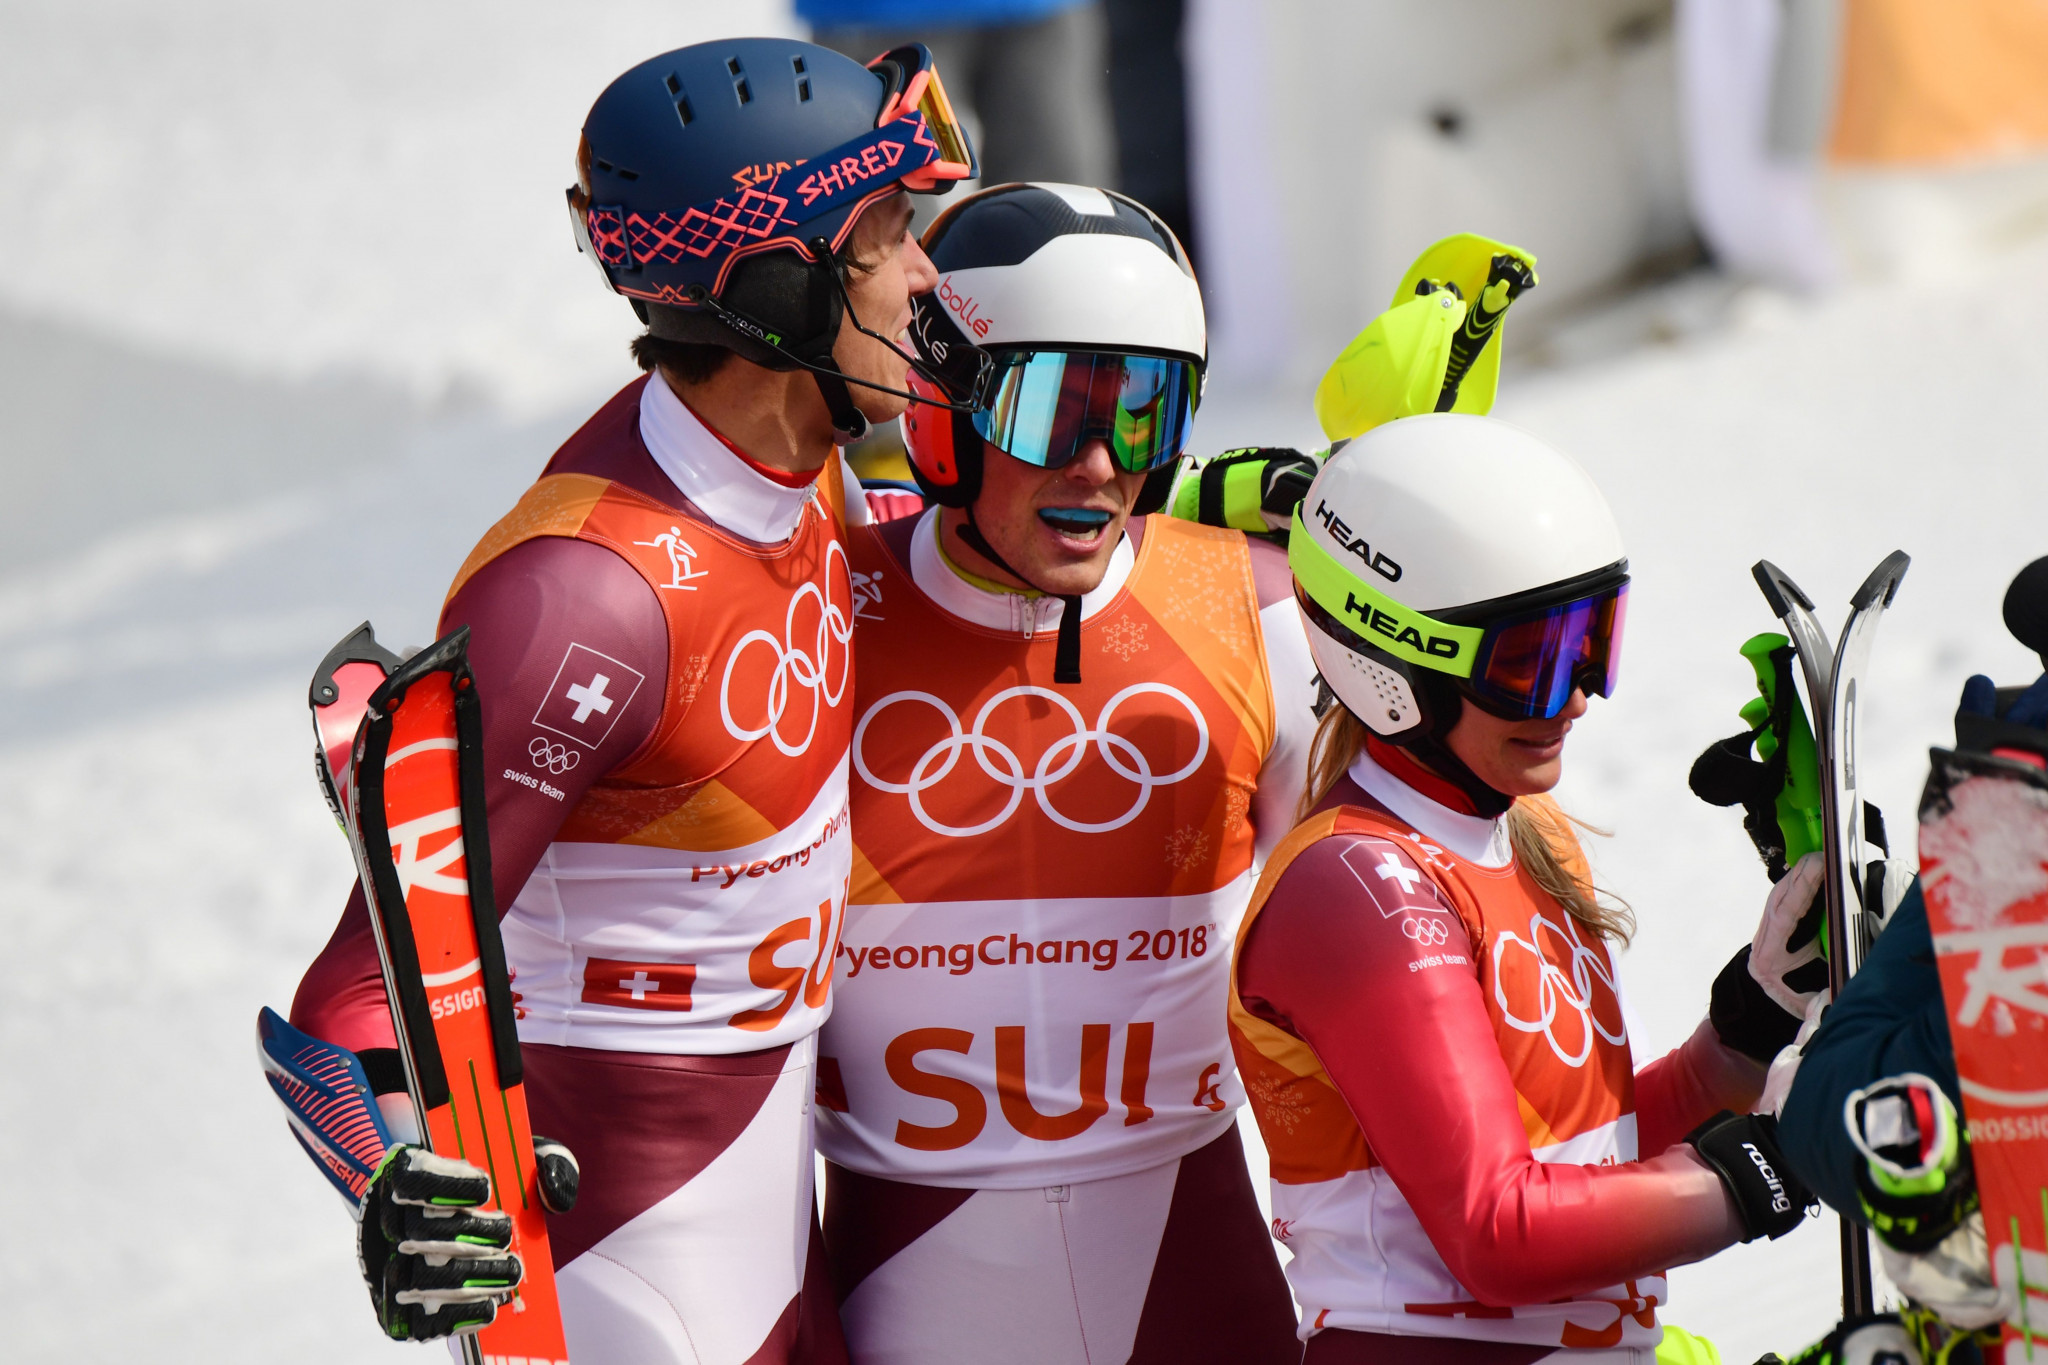 Switzerland win first-ever Olympic Alpine team event title at Pyeongchang 2018